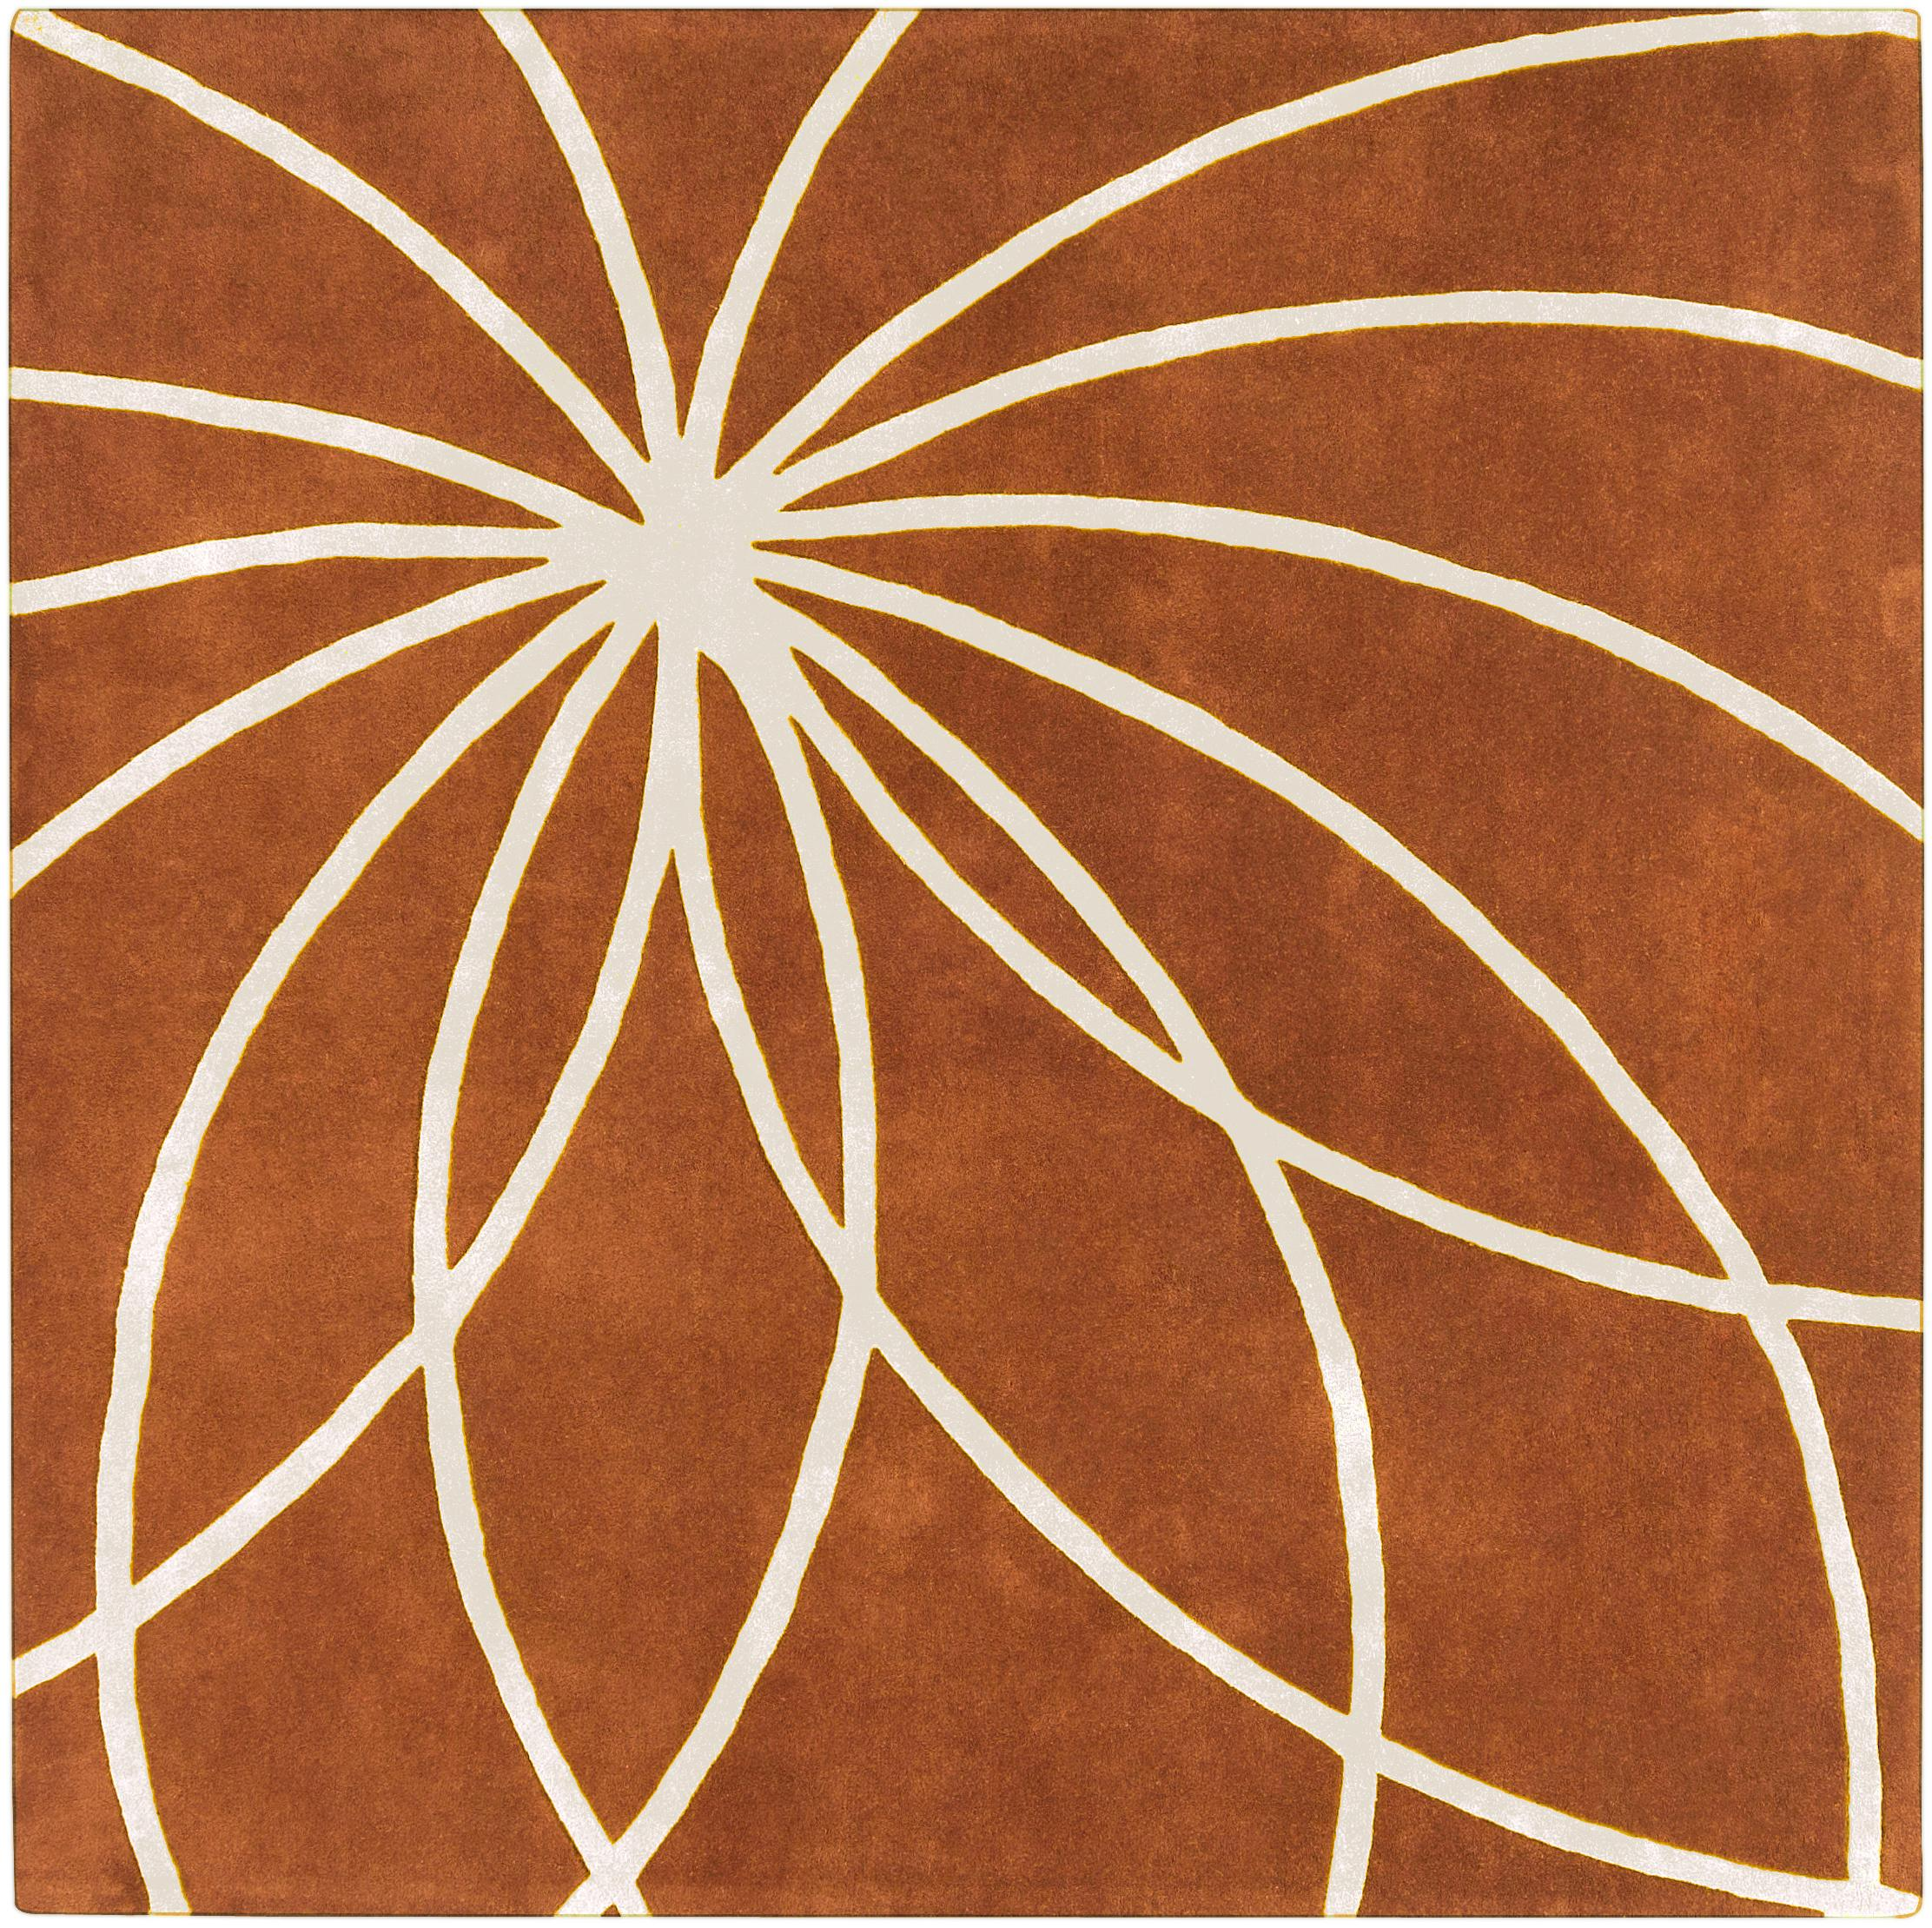 Surya Rugs Forum 6' Square - Item Number: FM7175-6SQ